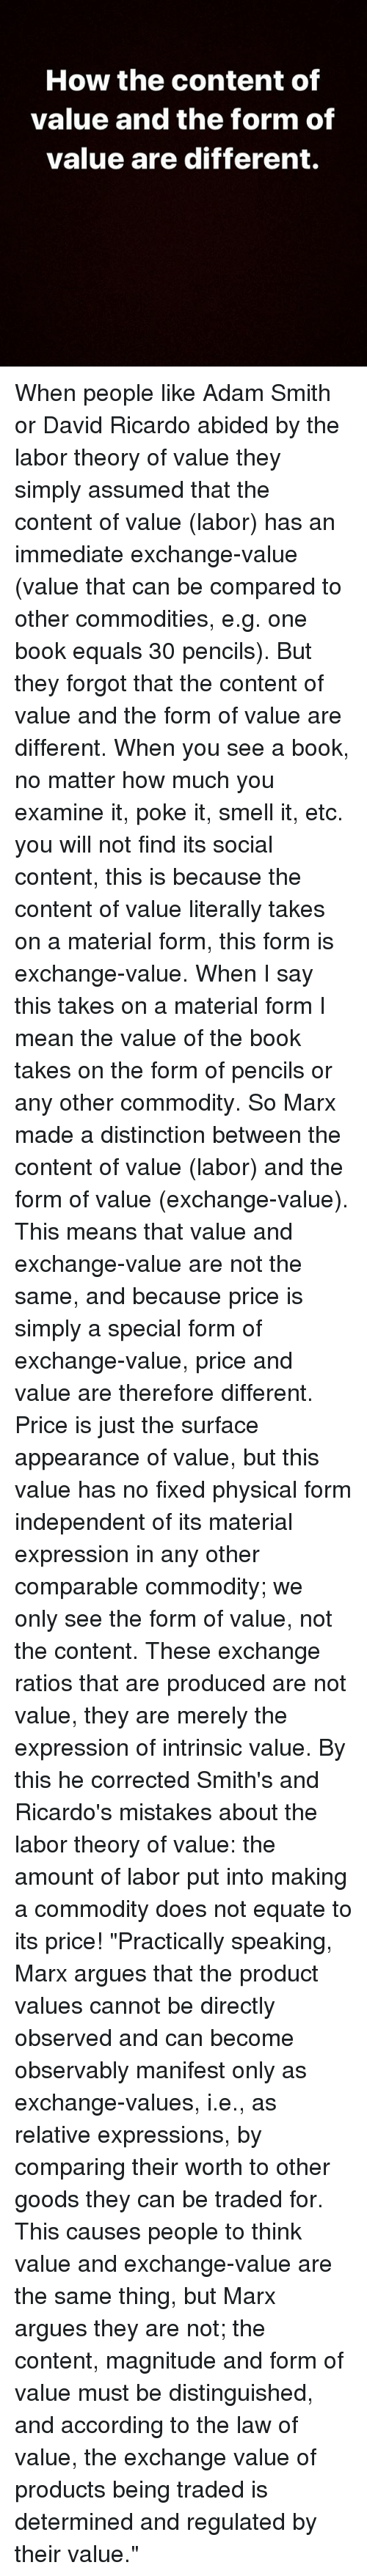 a comparison of adam smith and david ricardo on the theory of value